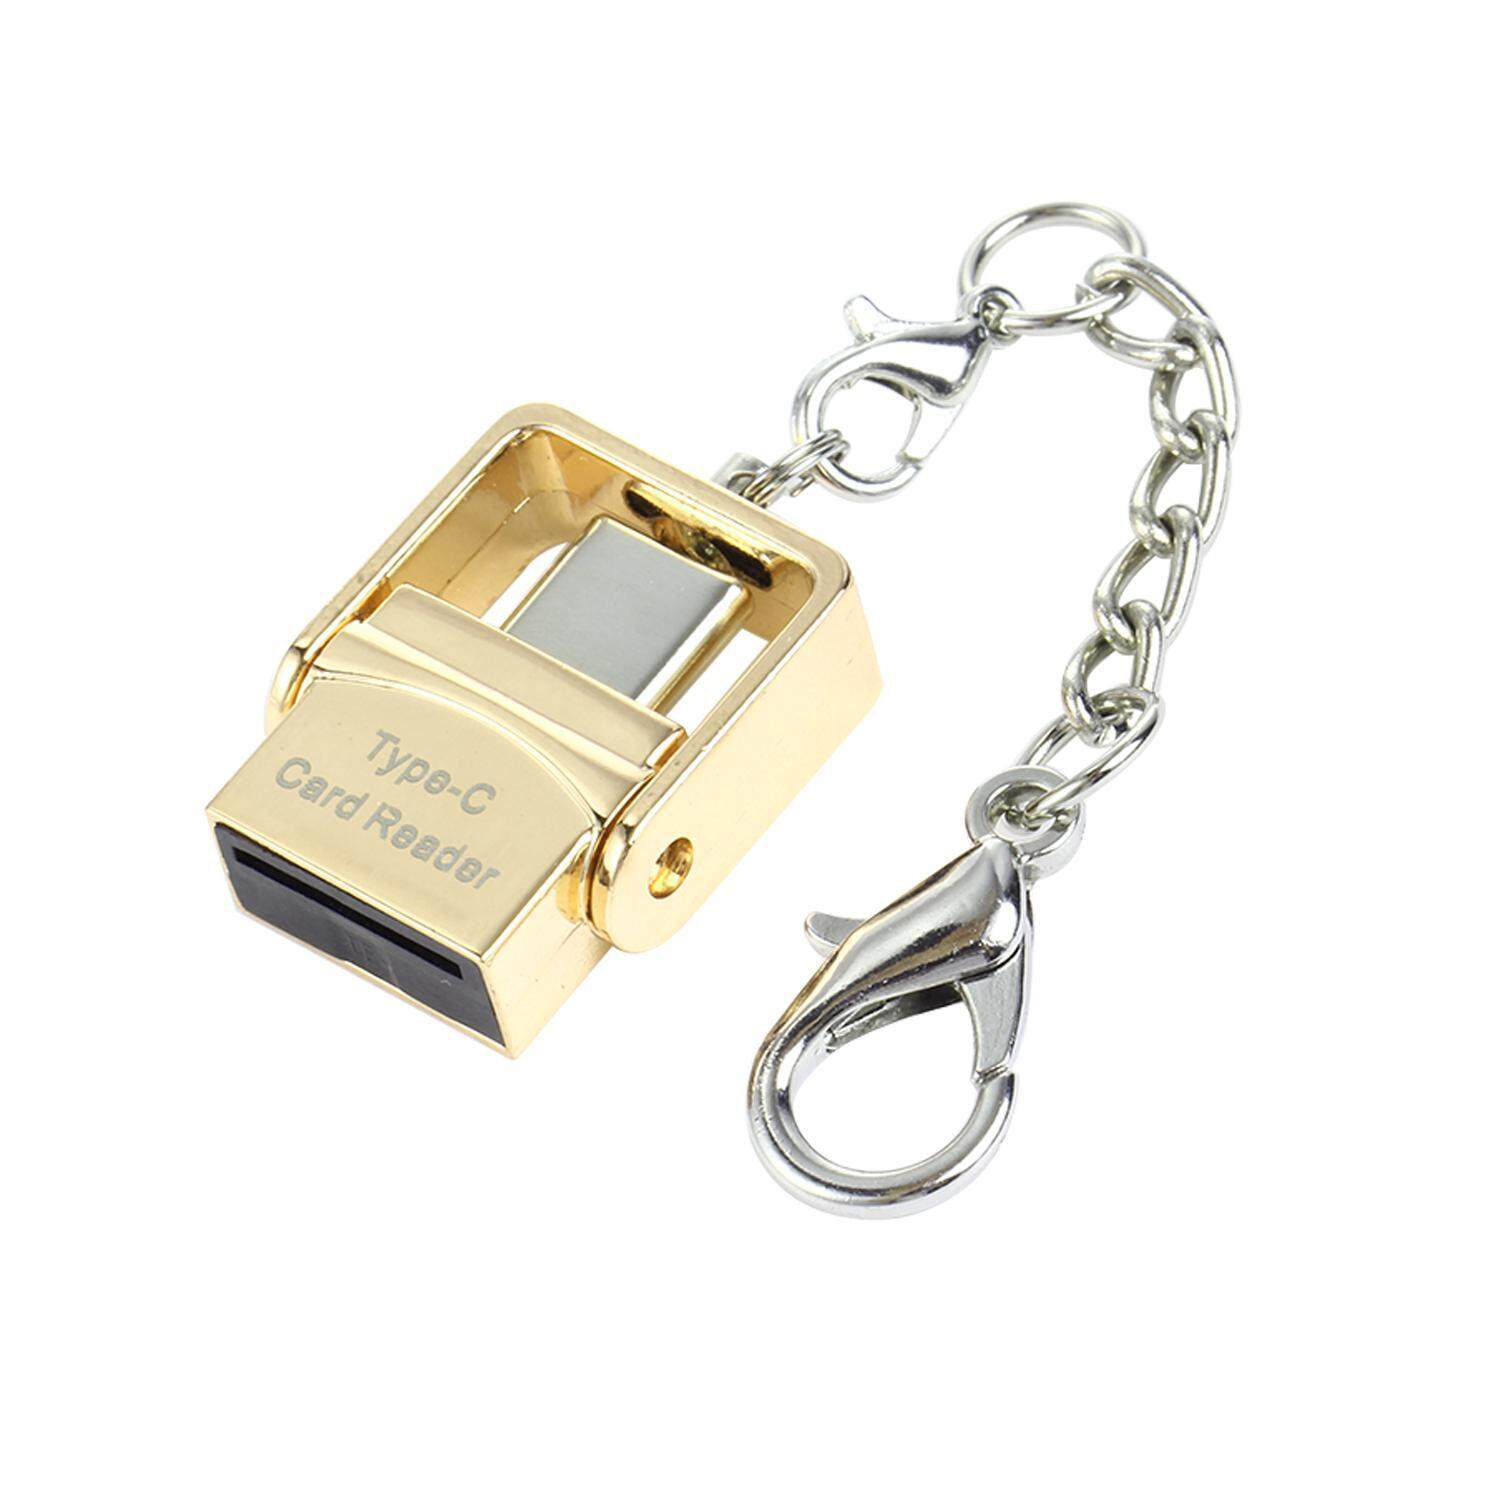 Hình ảnh leegoal Metal Mobile Phone Card Reader Type-c OTG Interface For Android And More,(Gold) - intl